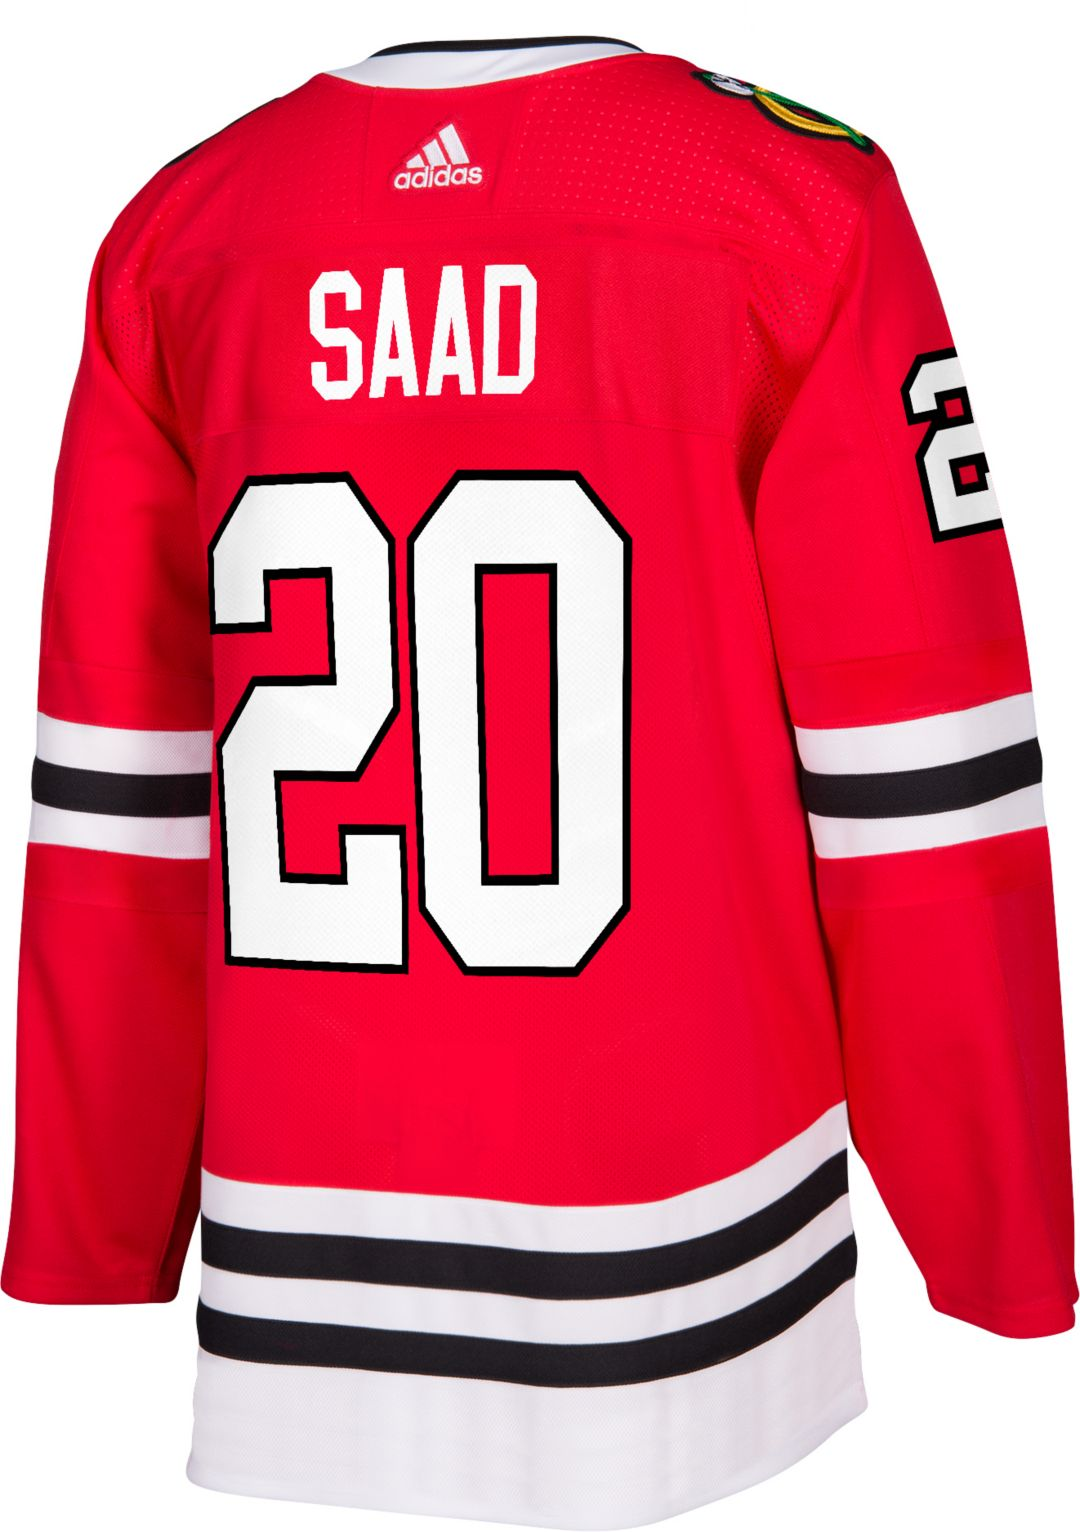 1a3f927d3 adidas Men's Chicago Blackhawks Brandon Saad #20 Authentic Pro Home Jersey 3